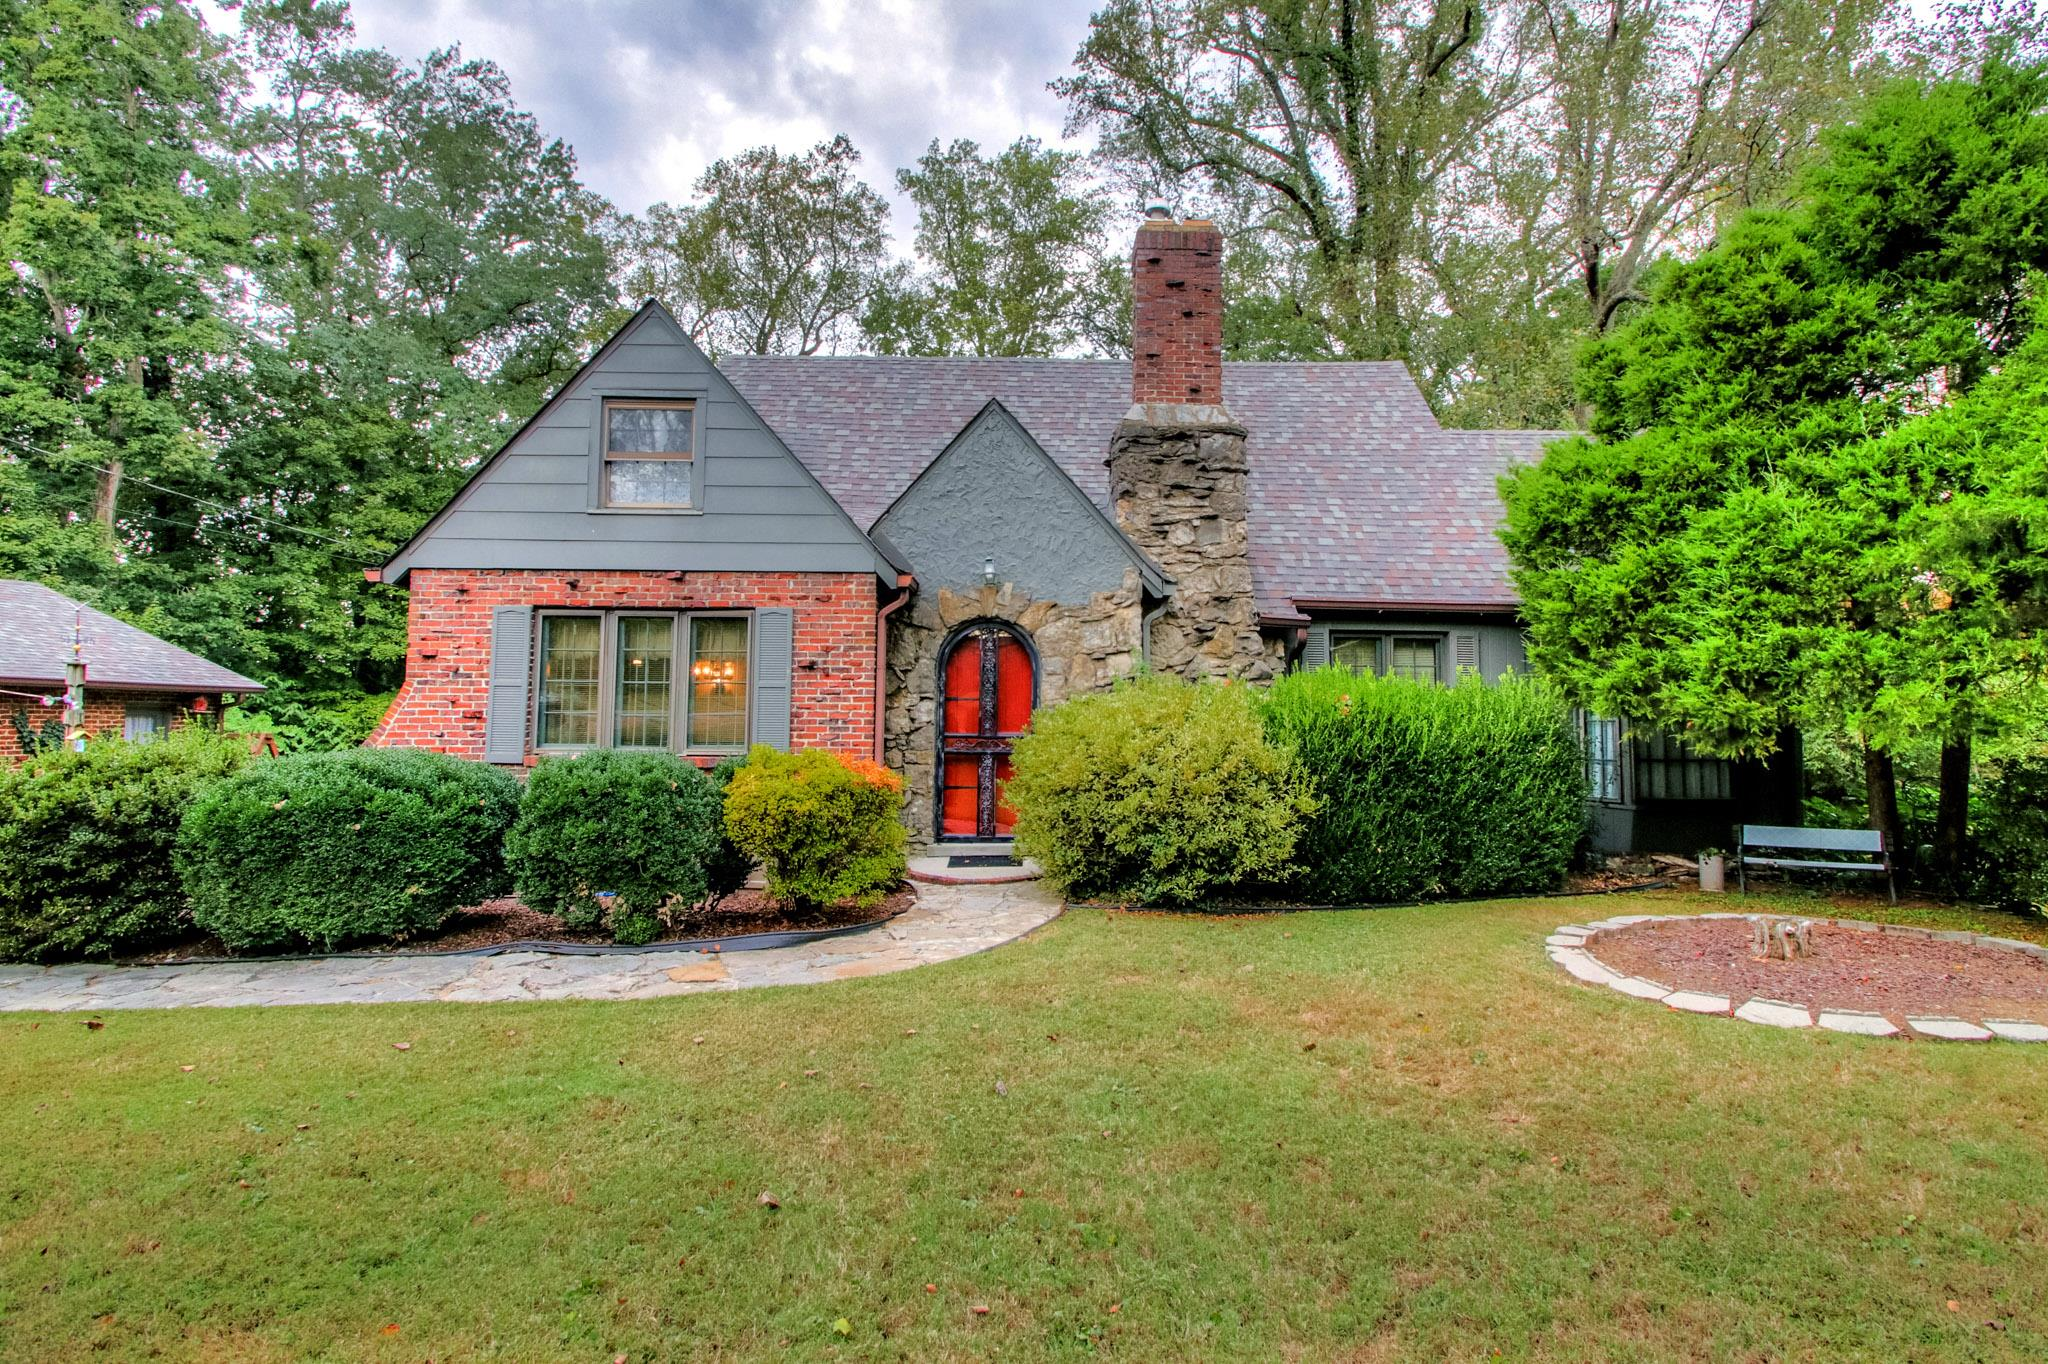 120 Spring Valley Rd, Nashville, TN 37214 - Nashville, TN real estate listing